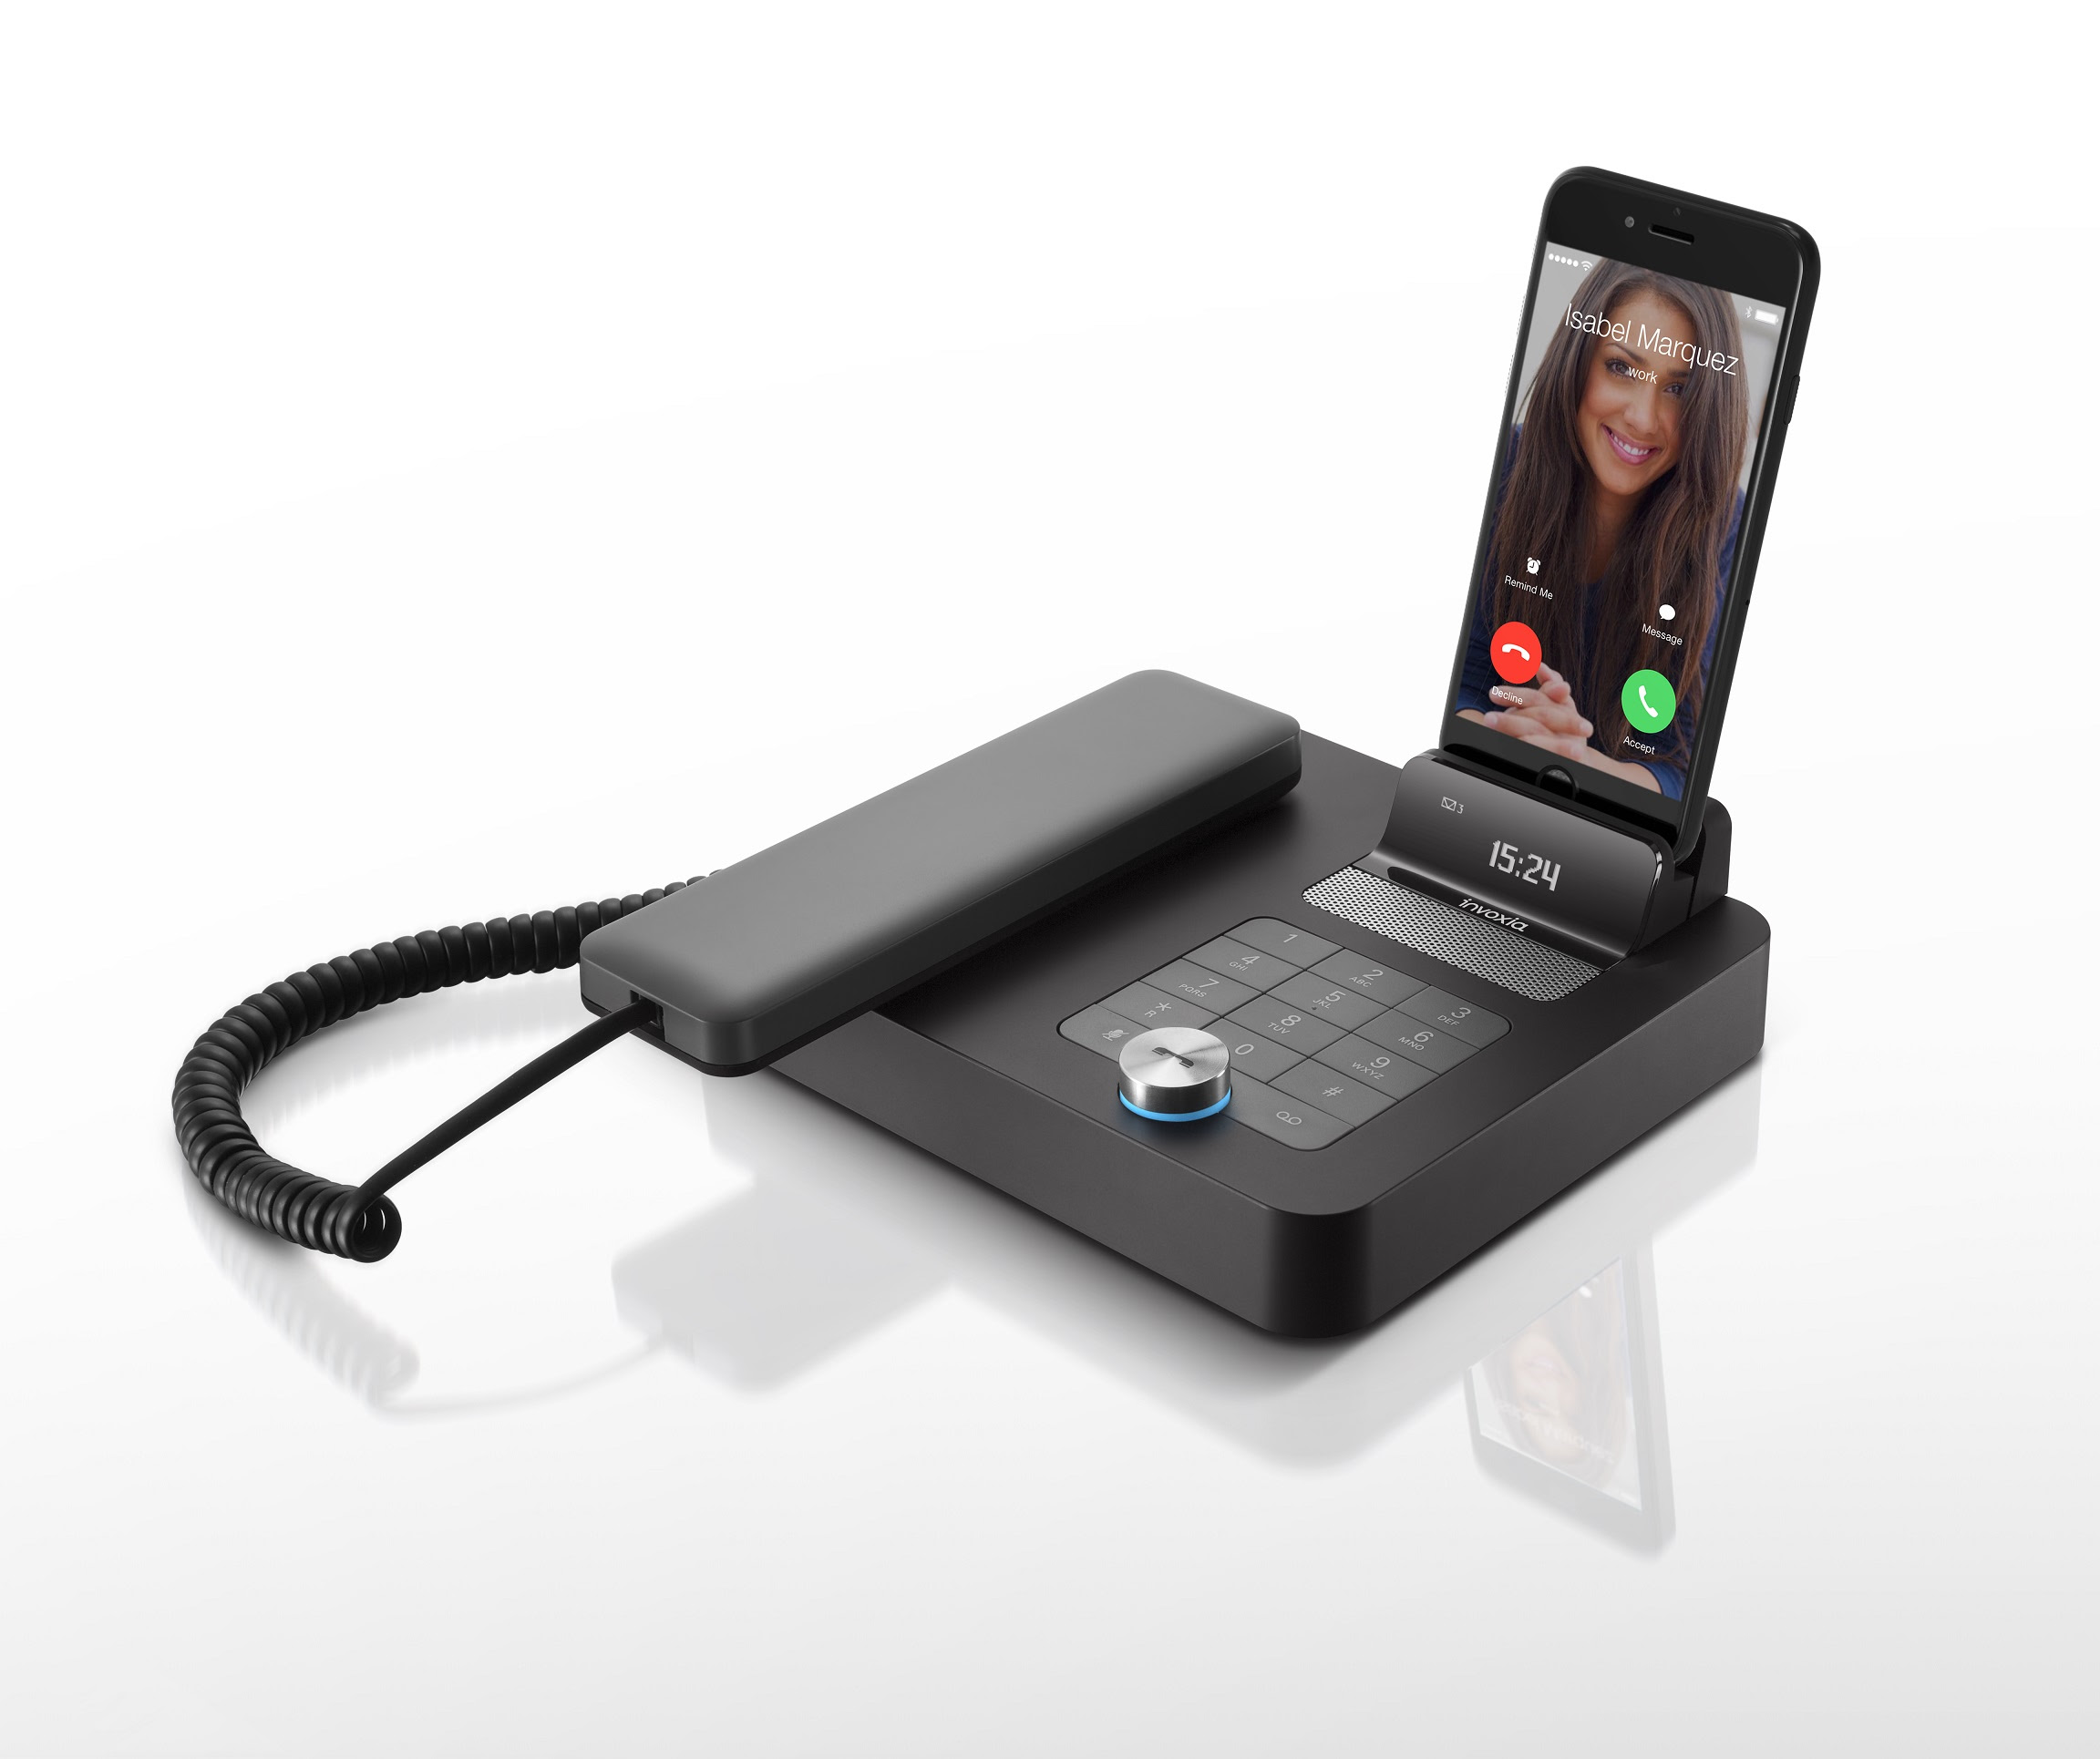 Turn Your Mobile Phone Into A Desk Phone